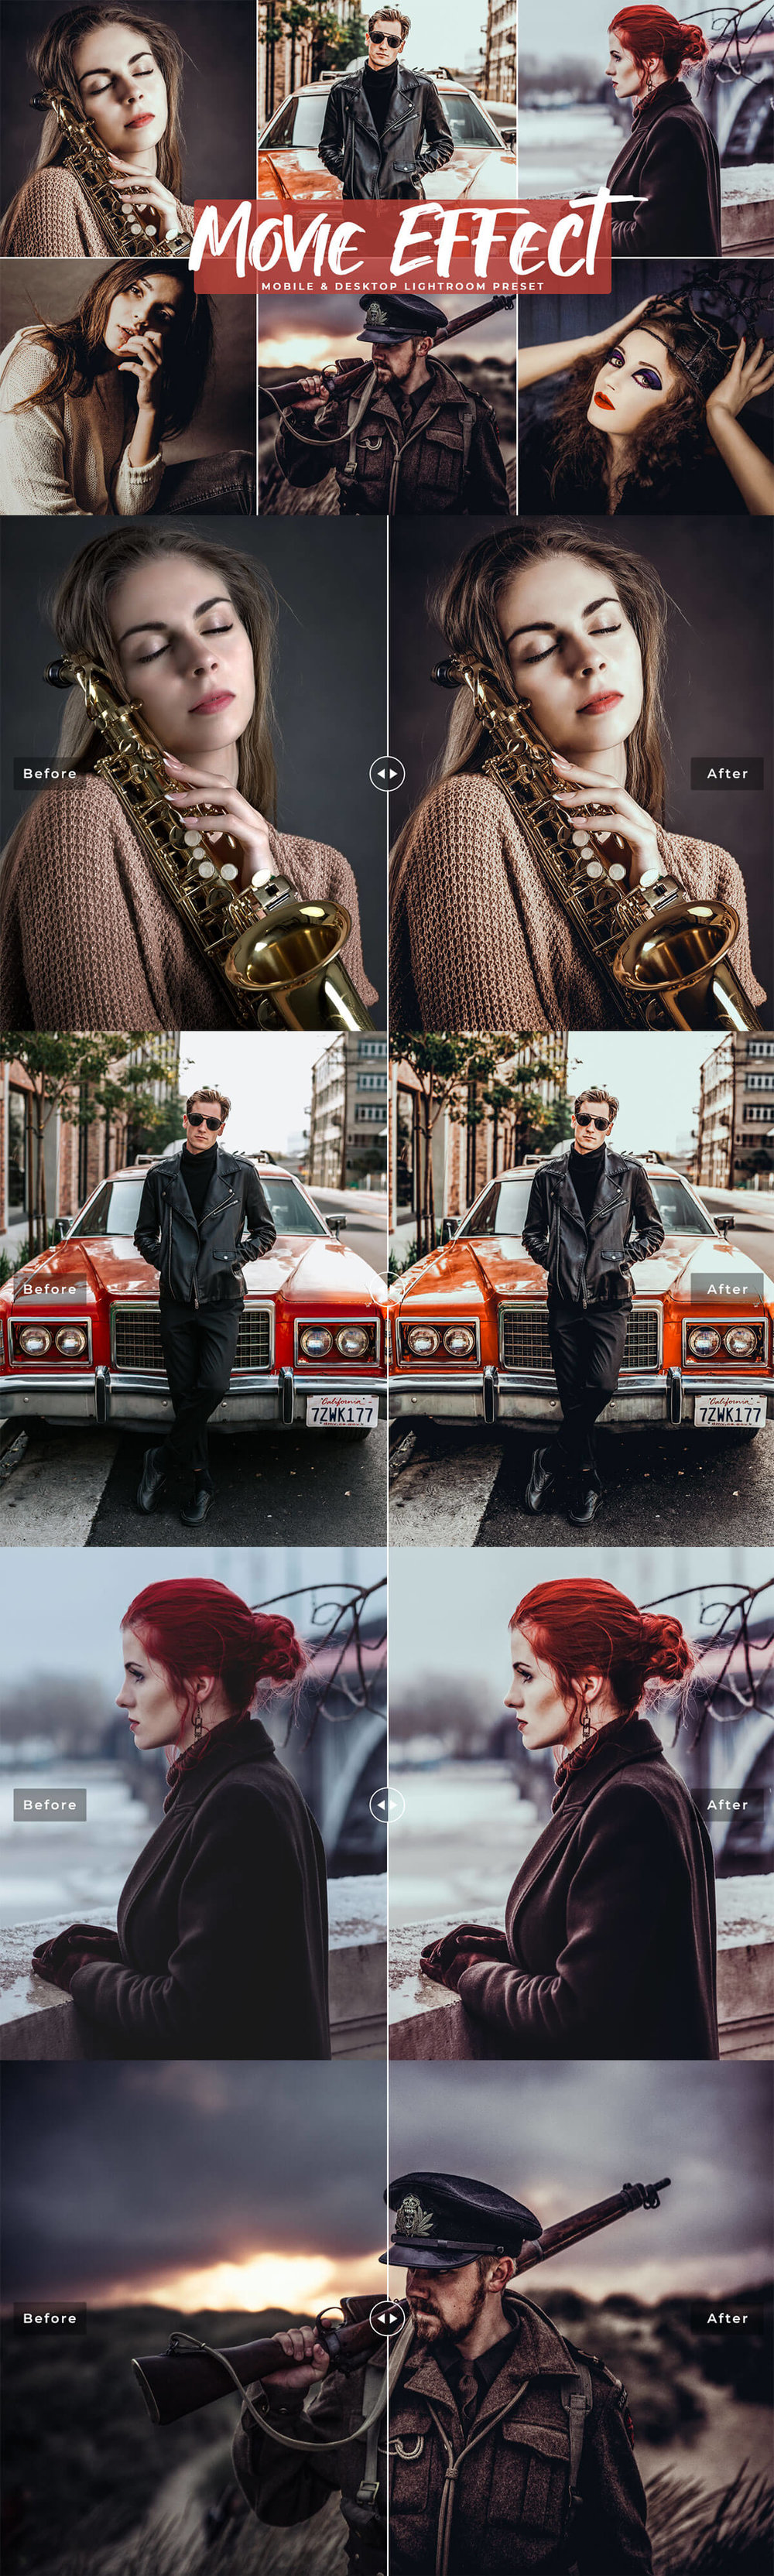 #Movie Effect Free #Lightroom #Preset was created to replicate the look of cinematic effect used in movies and cinema.